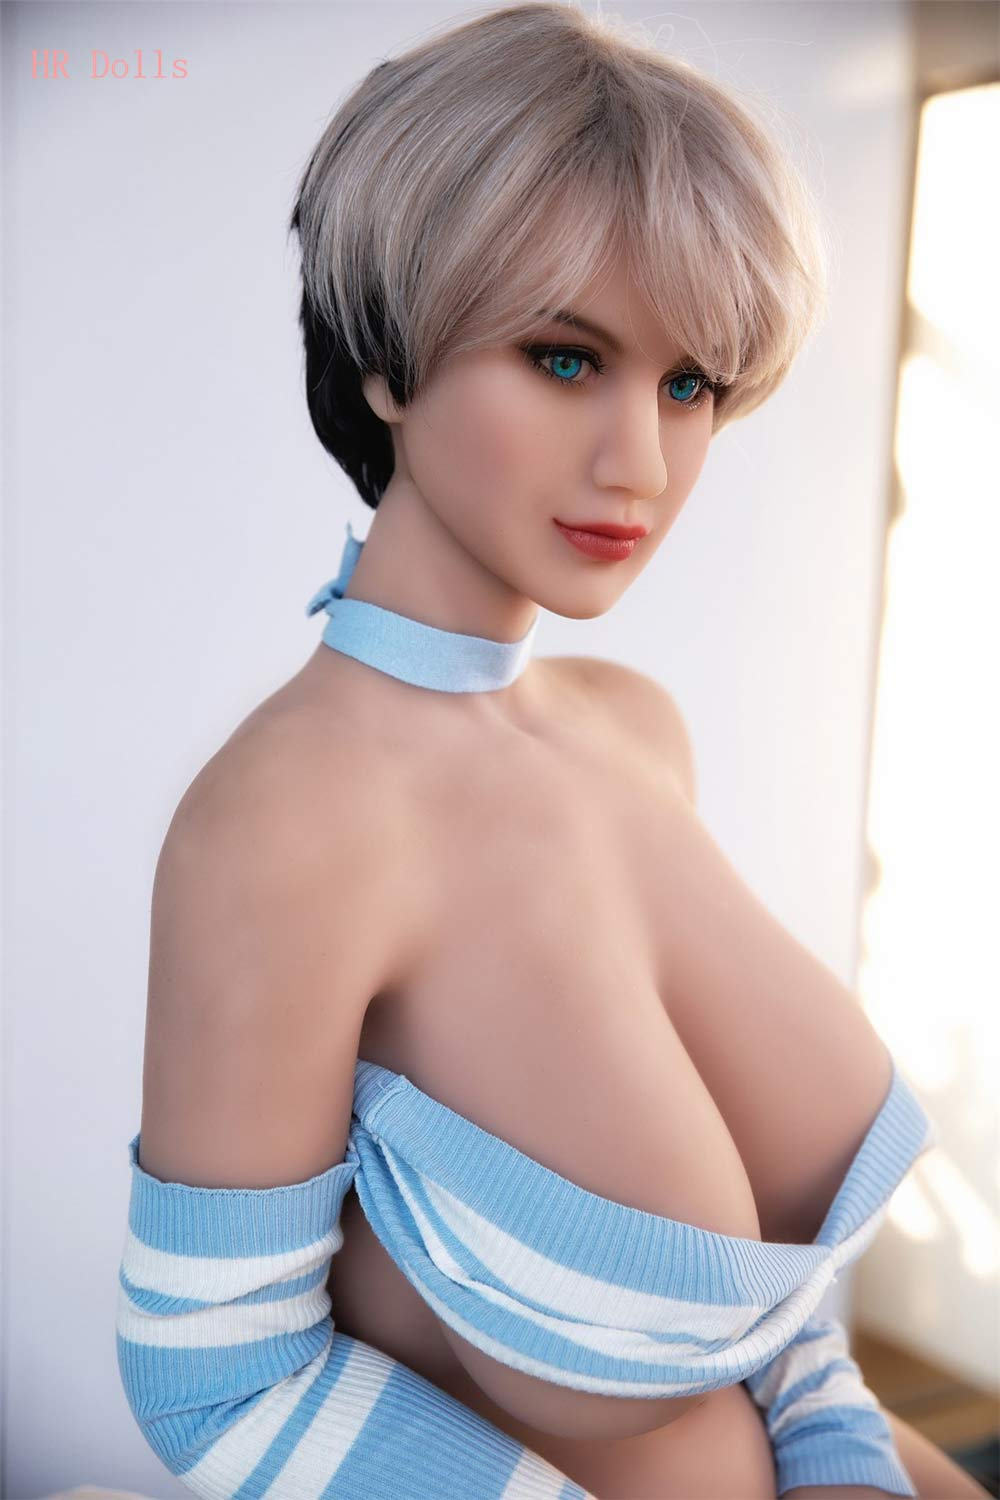 Big breasted sex doll with blue eyes